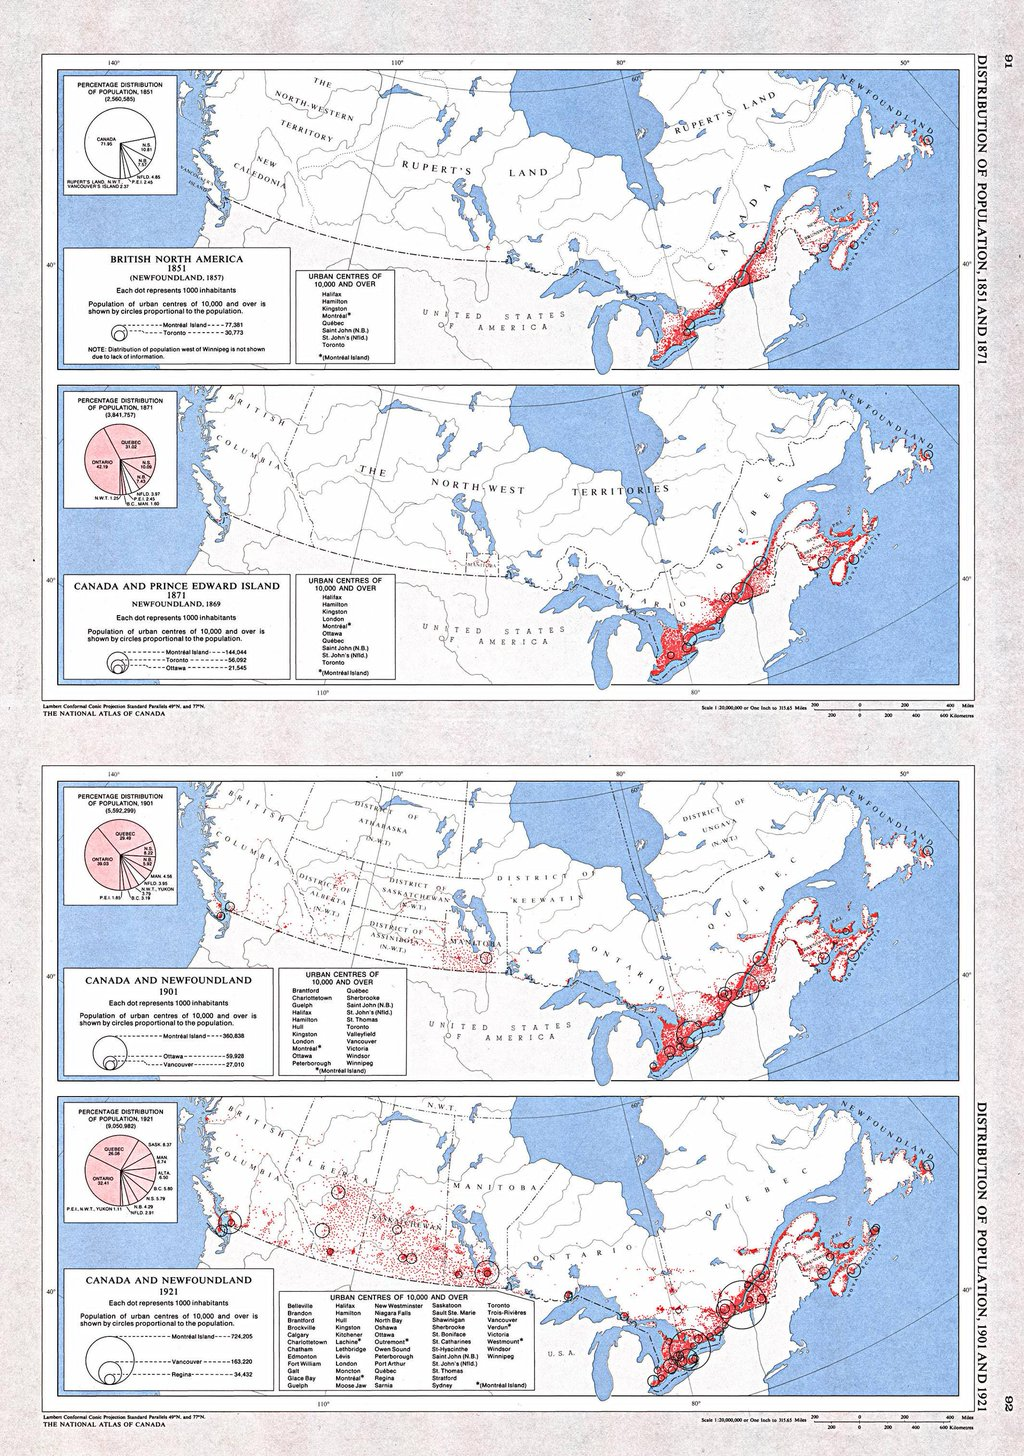 Canadian population from 1851 to 1921